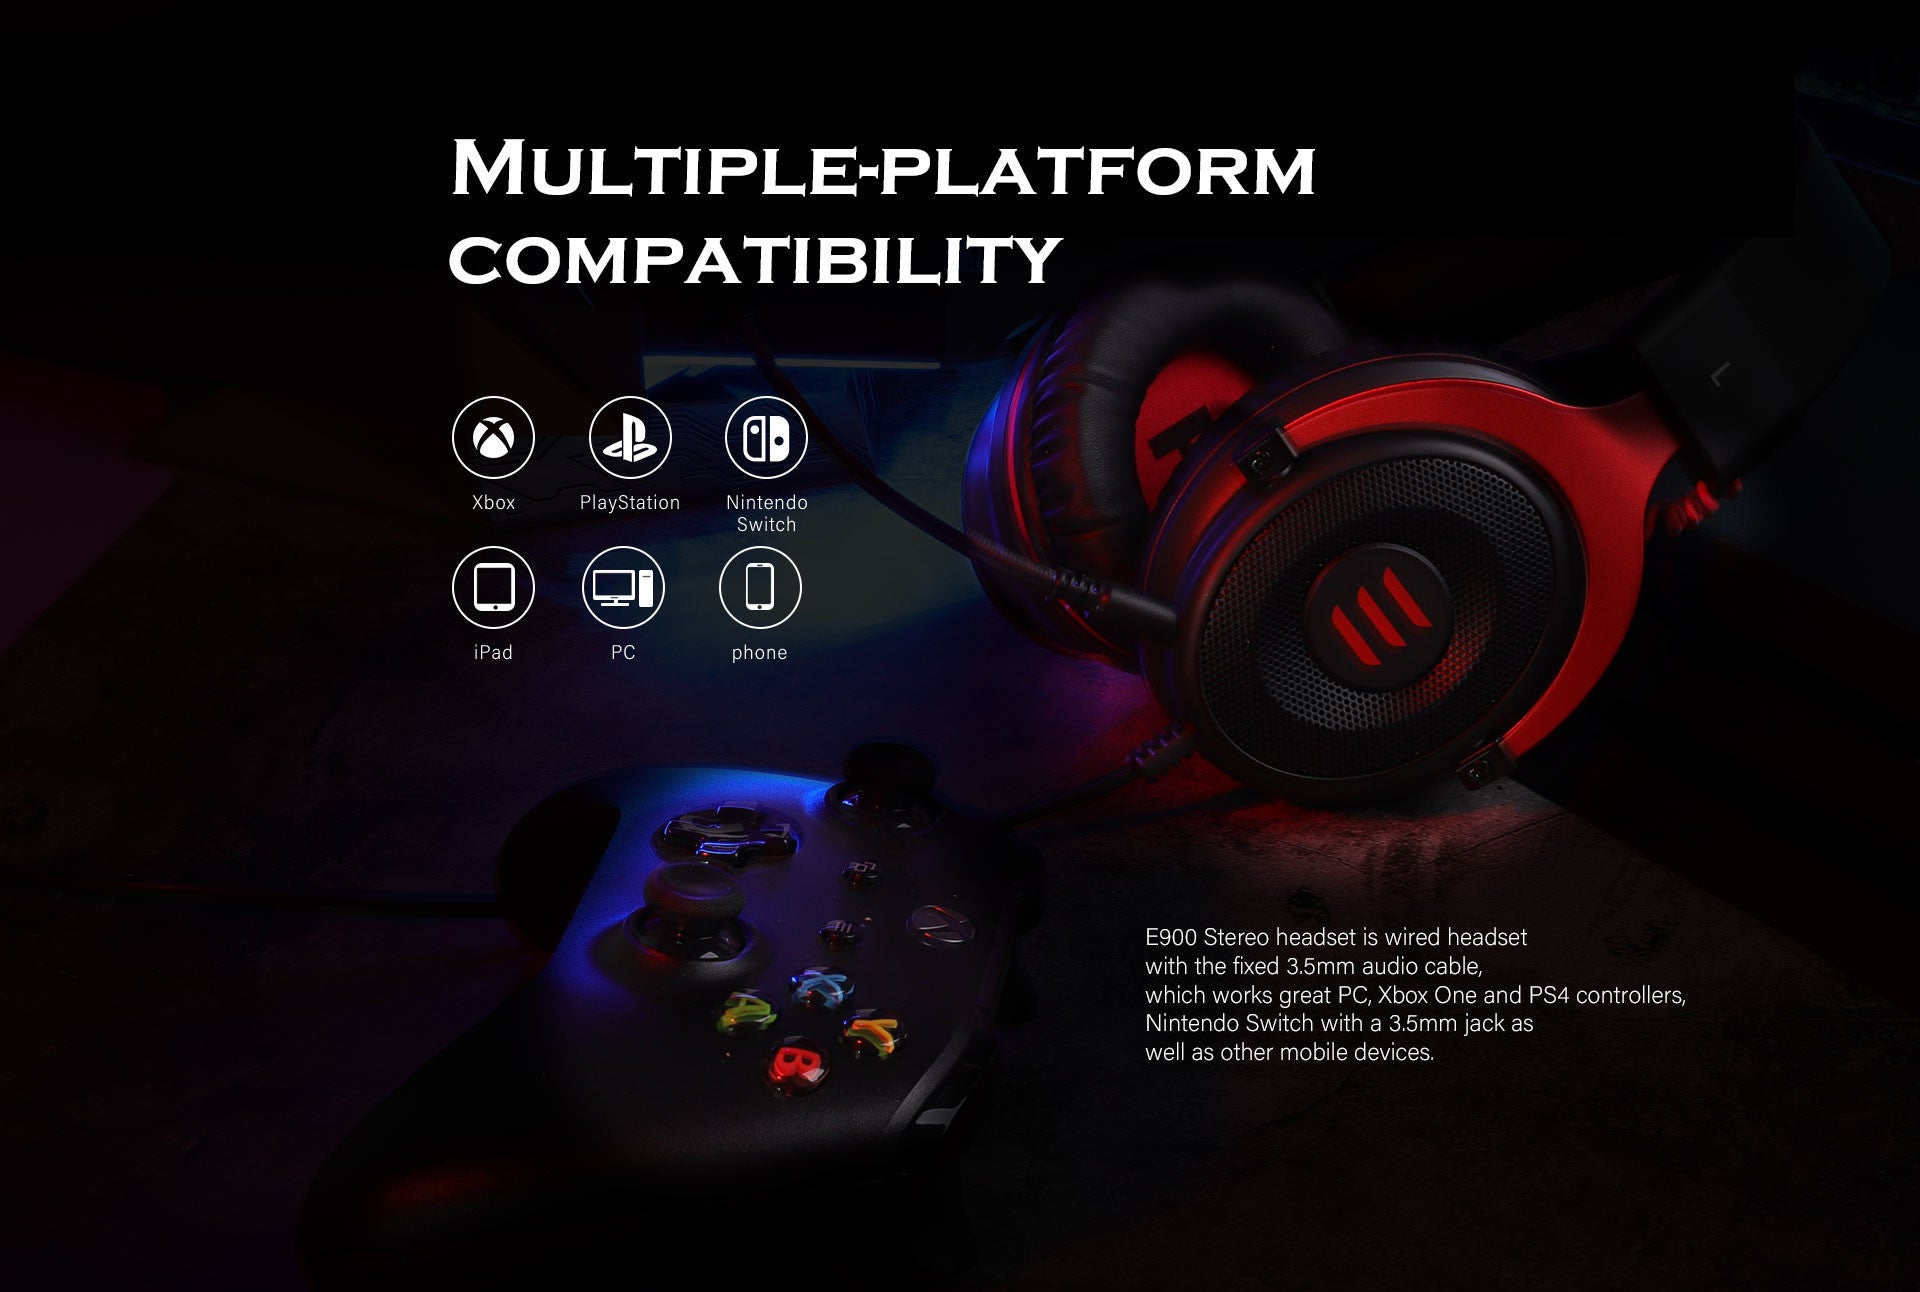 E900 stereo sound gaming headset supports multiple-platform compatibiliy.